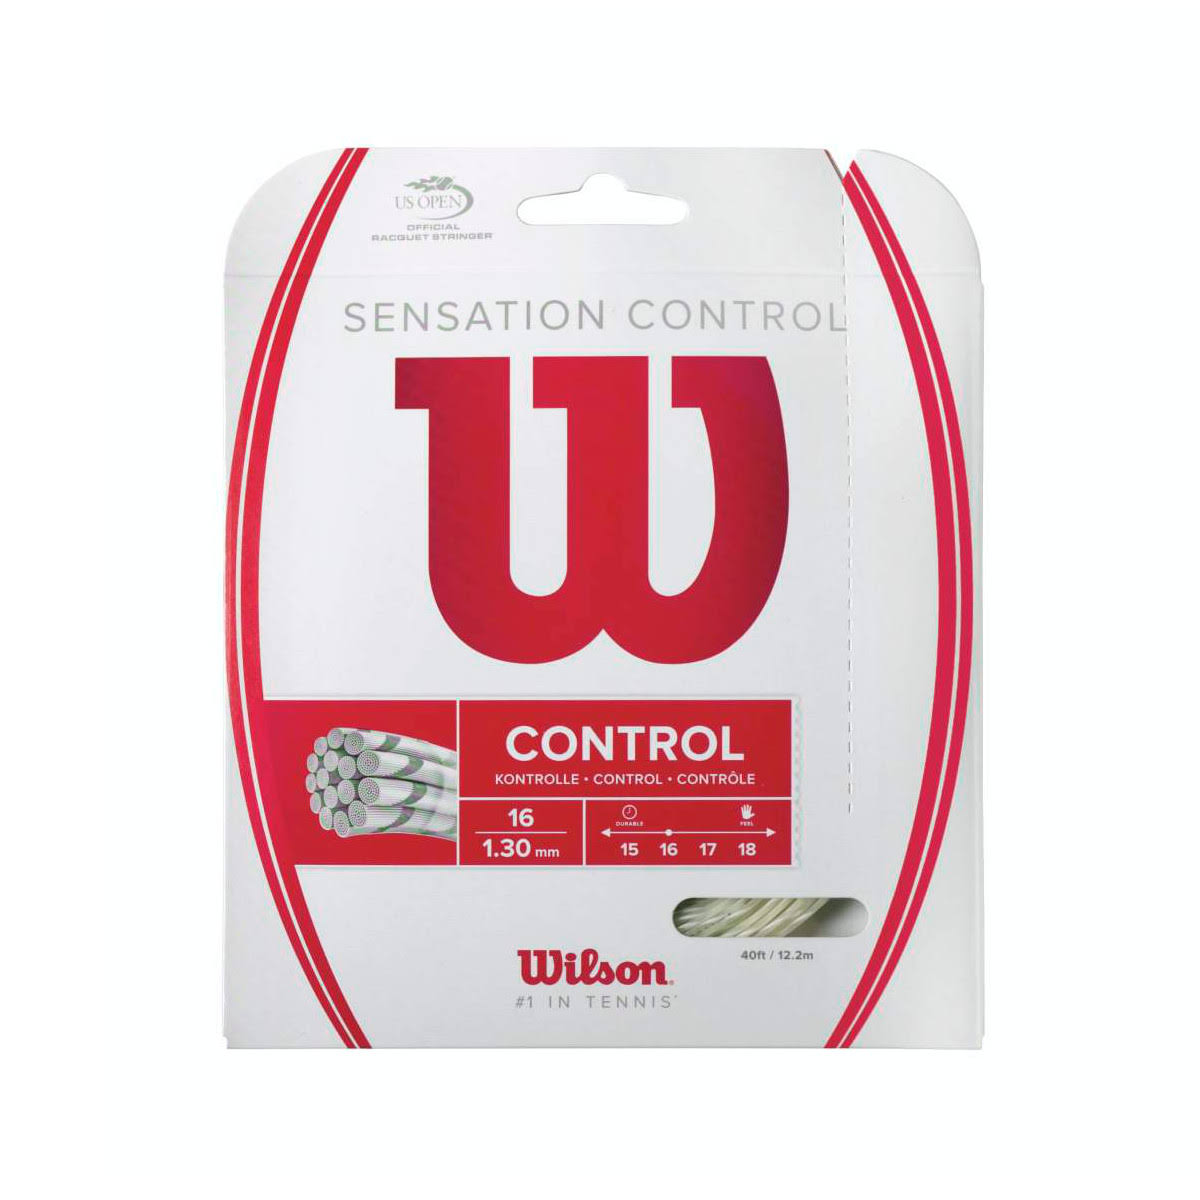 Wilson Sensation Control 16 String Set - Natural, 40'